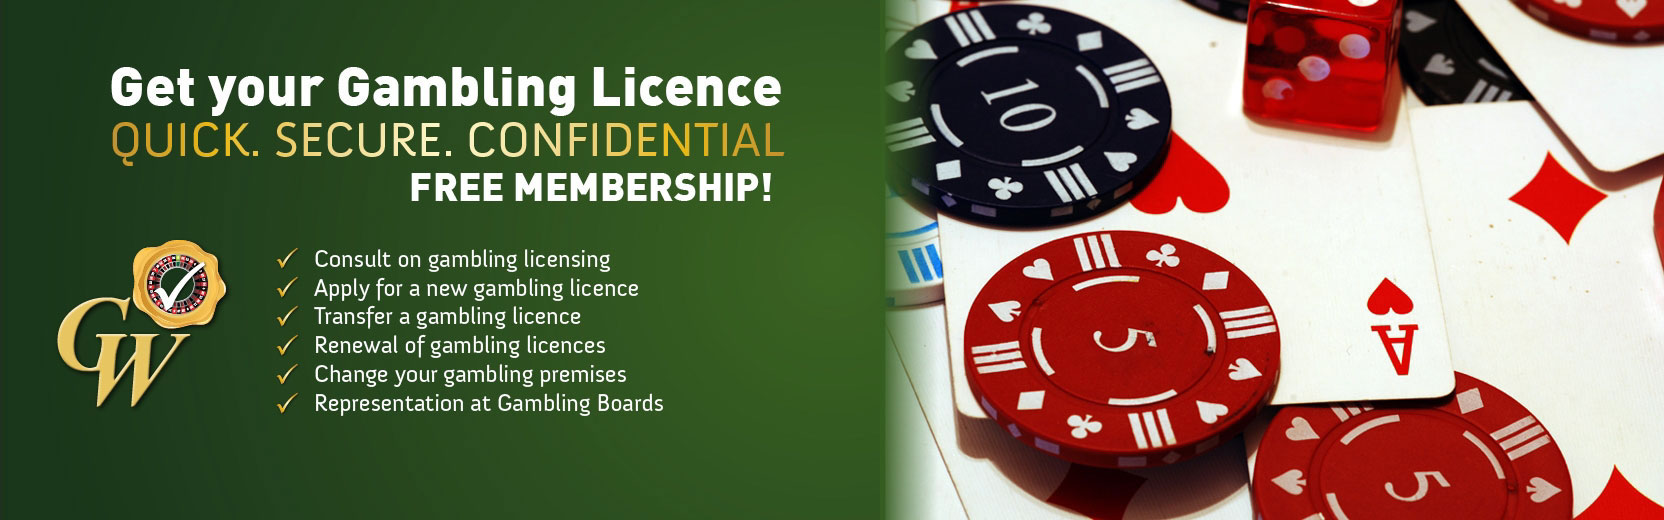 Get Your Gambling Licence